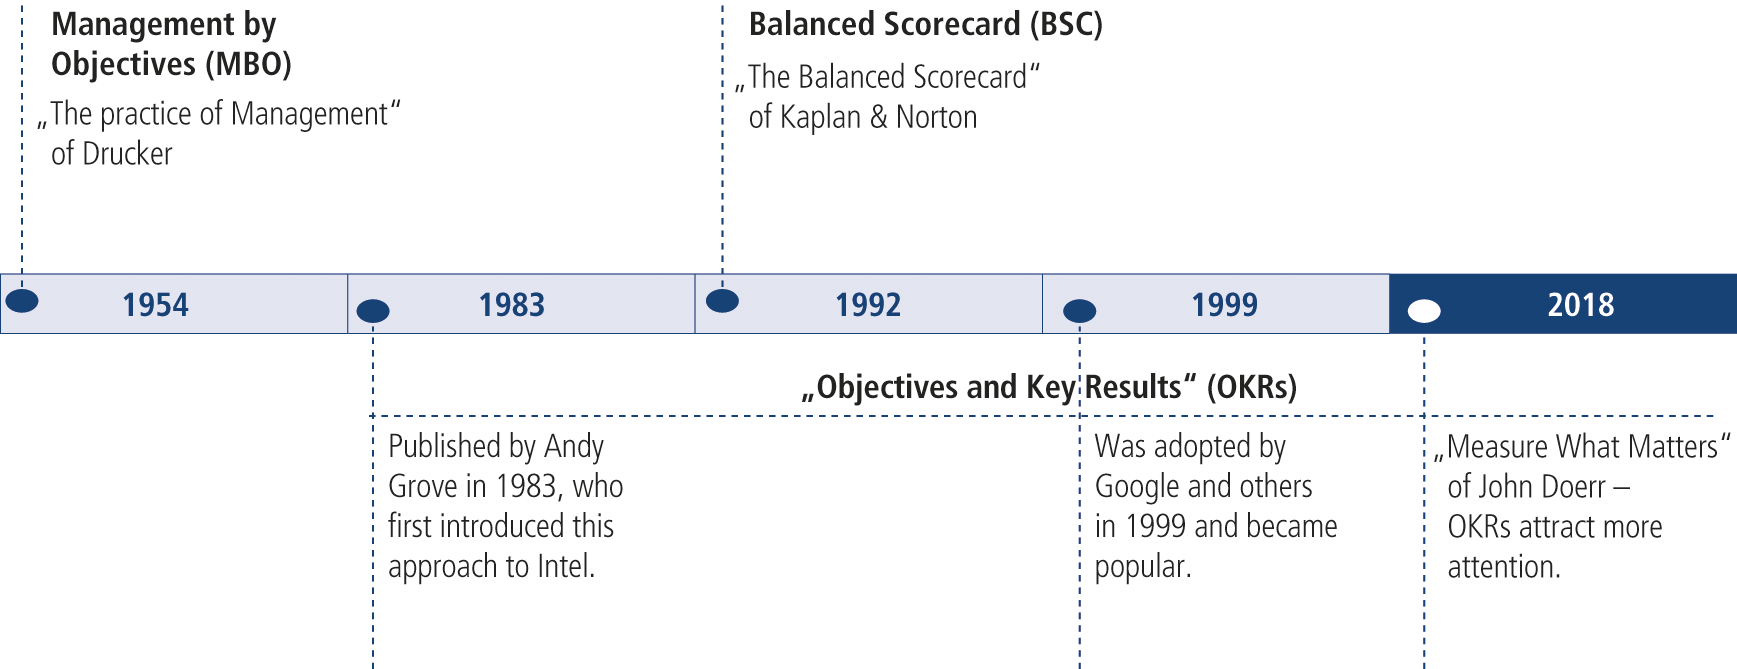 Fig. 6: Historical overview of objectives and key results